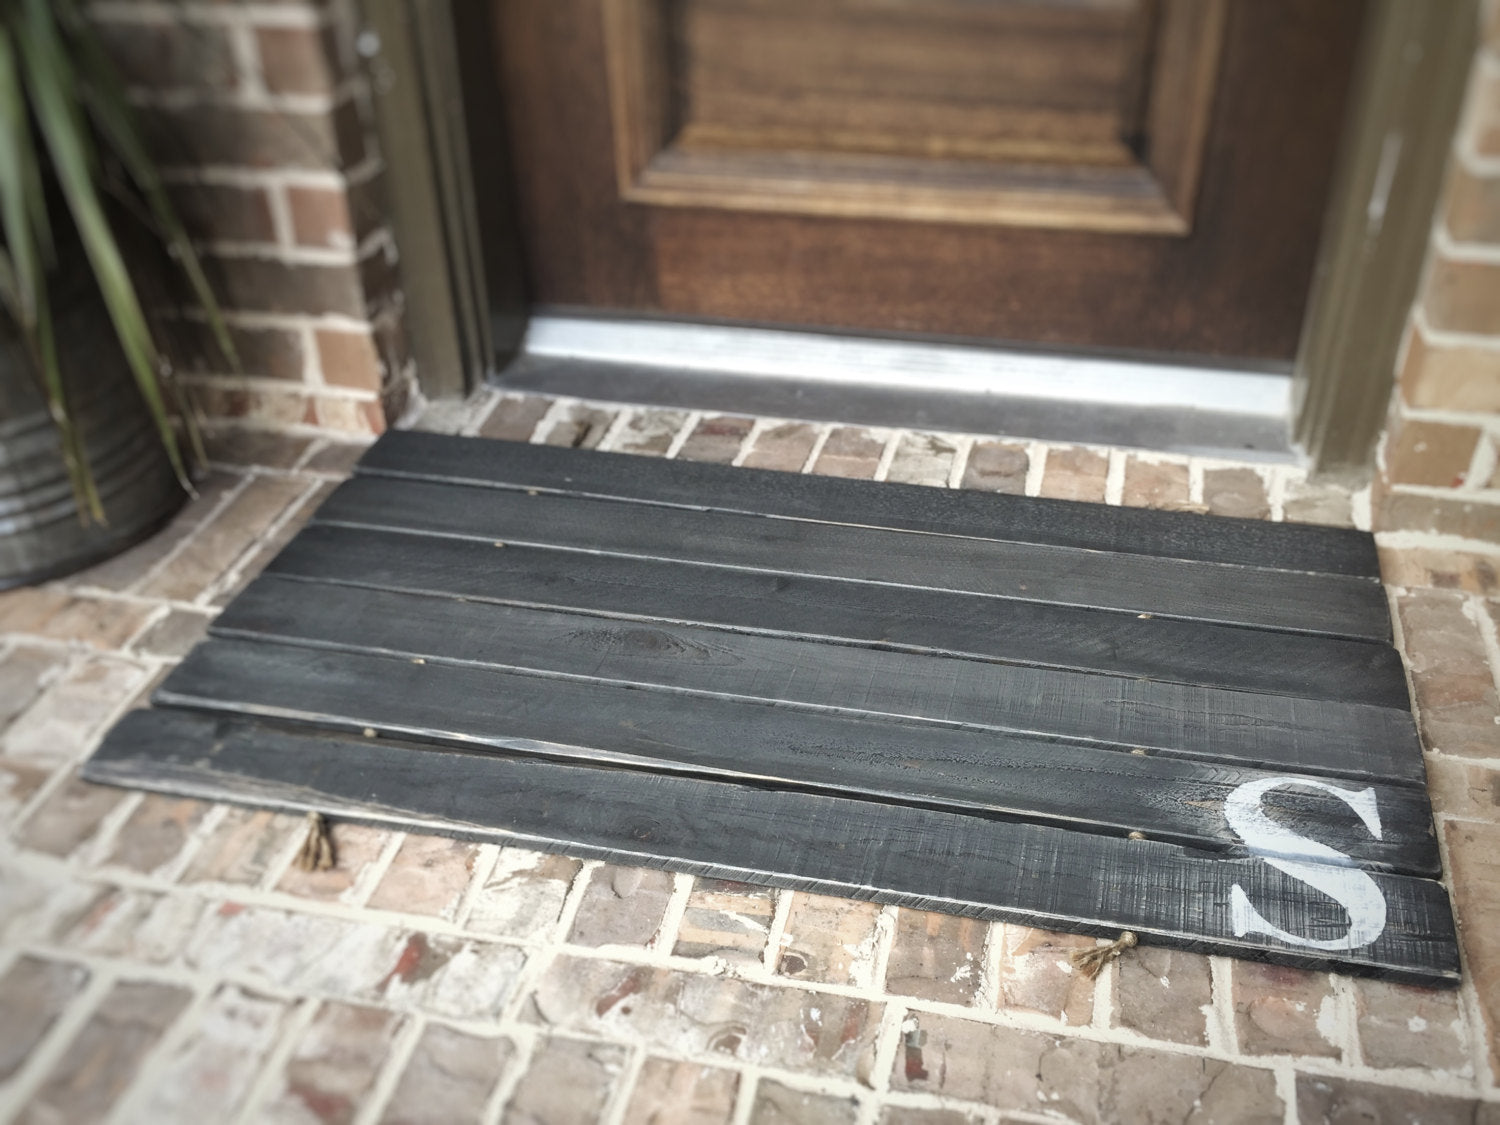 Doormat, Wood,  Oversized - Monogram, Custom Distressed Finishes: 2-TONE DARK GREY shown - Sartain's Awesome Shoppe